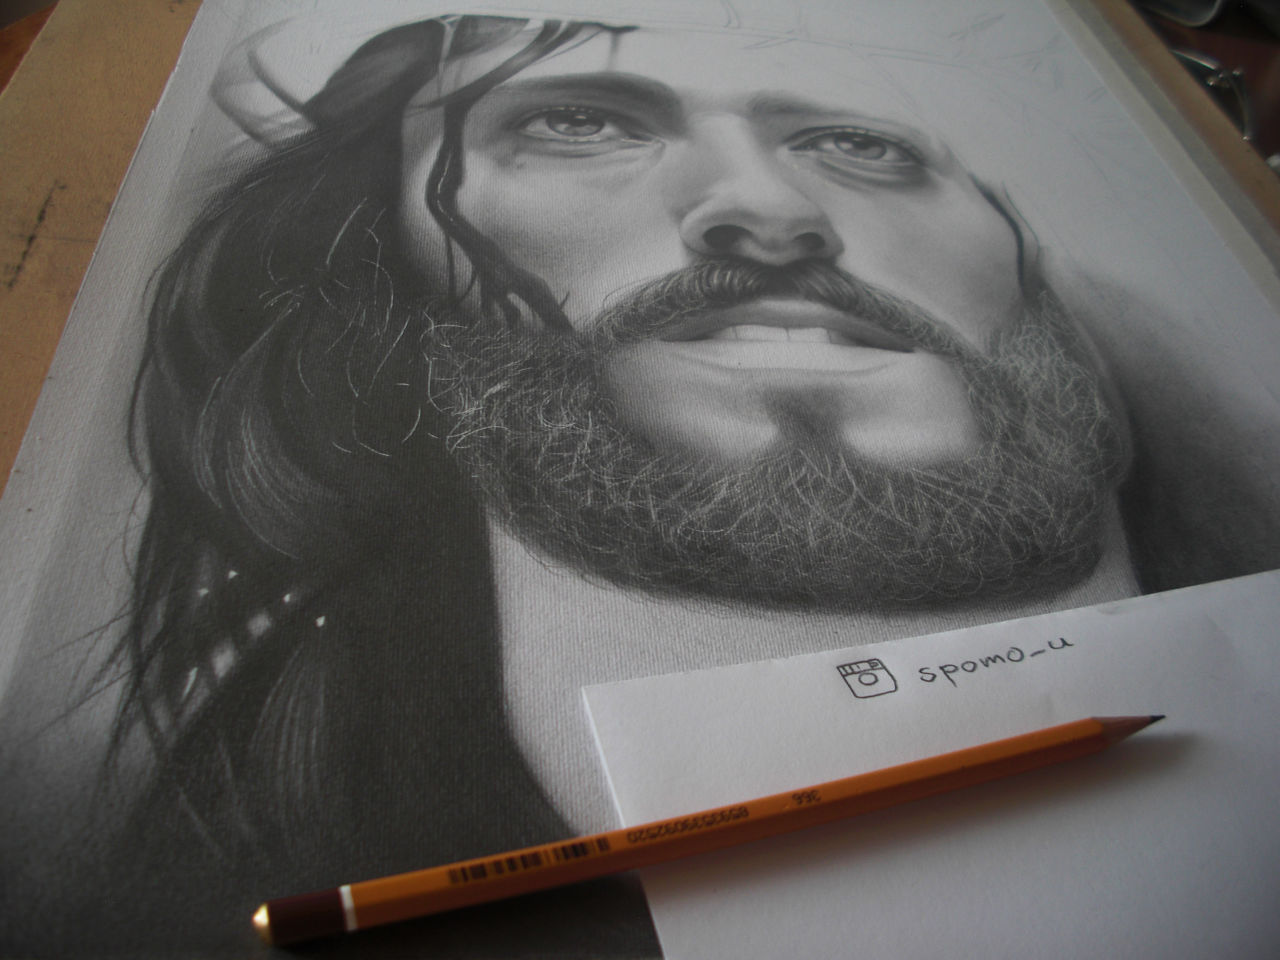 1280x960 Jesus Christ Drawing In Progress (Commissioned Work) Photoimage